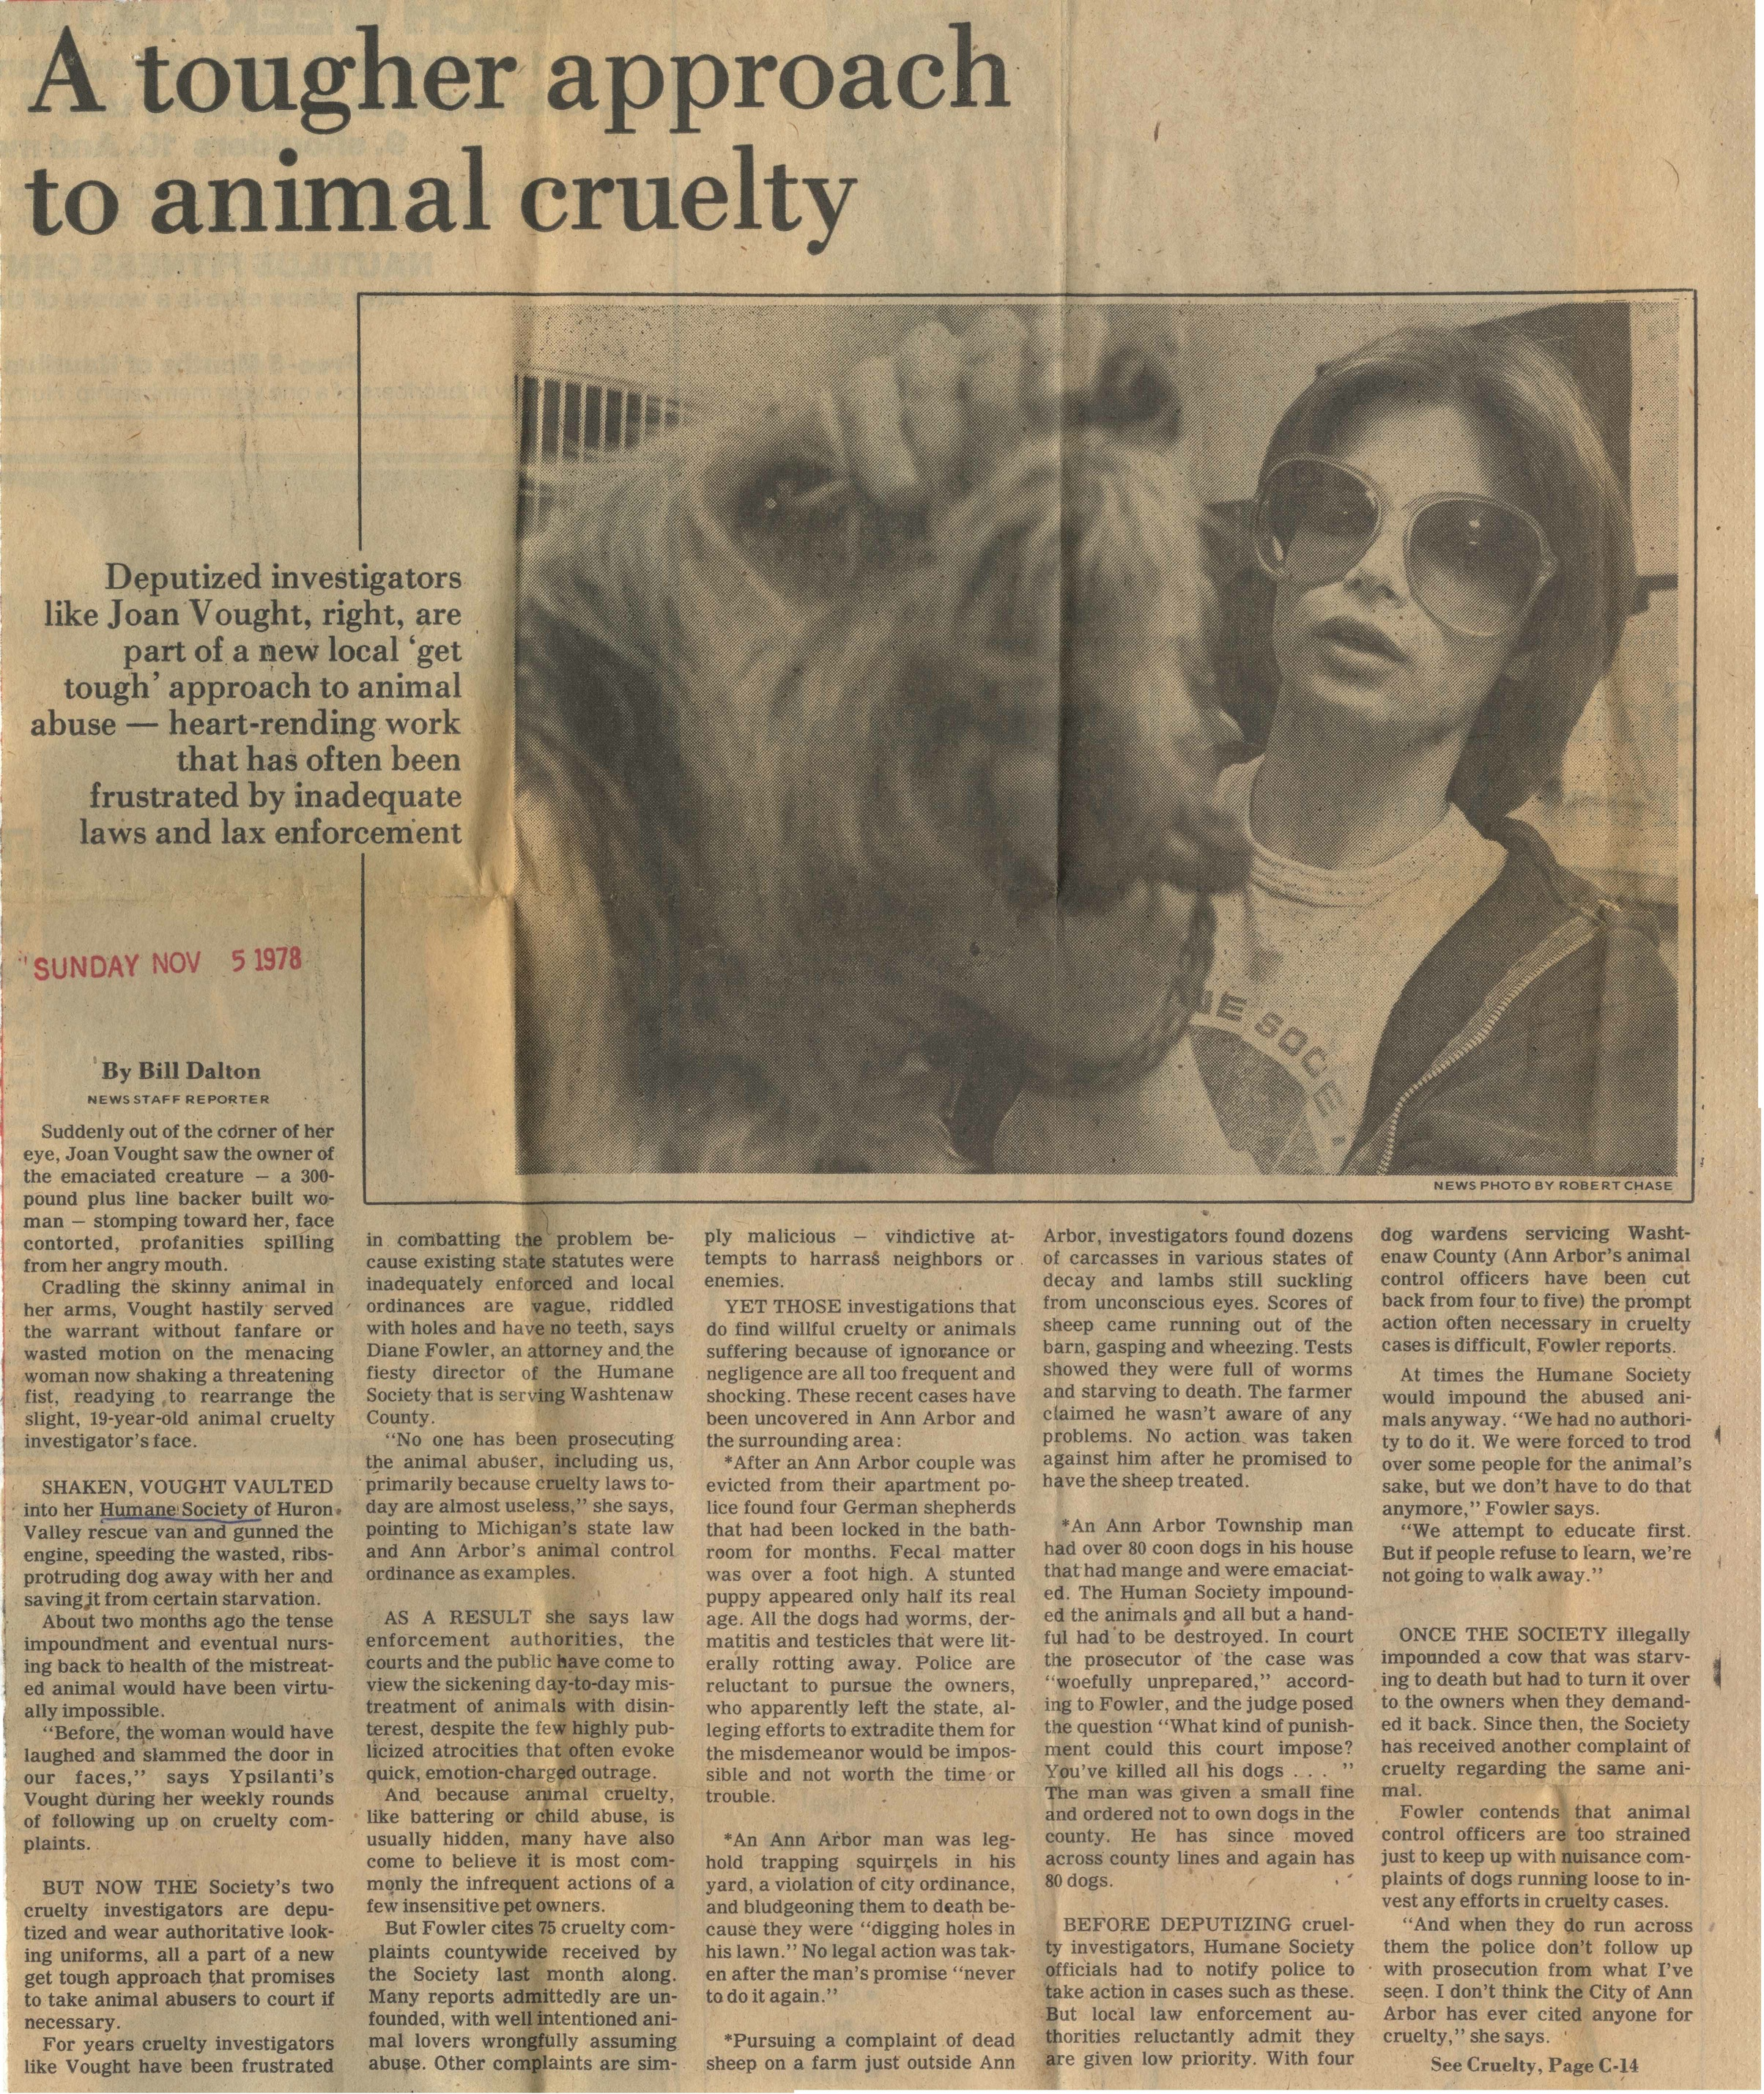 A Tougher Approach To Animal Cruelty image